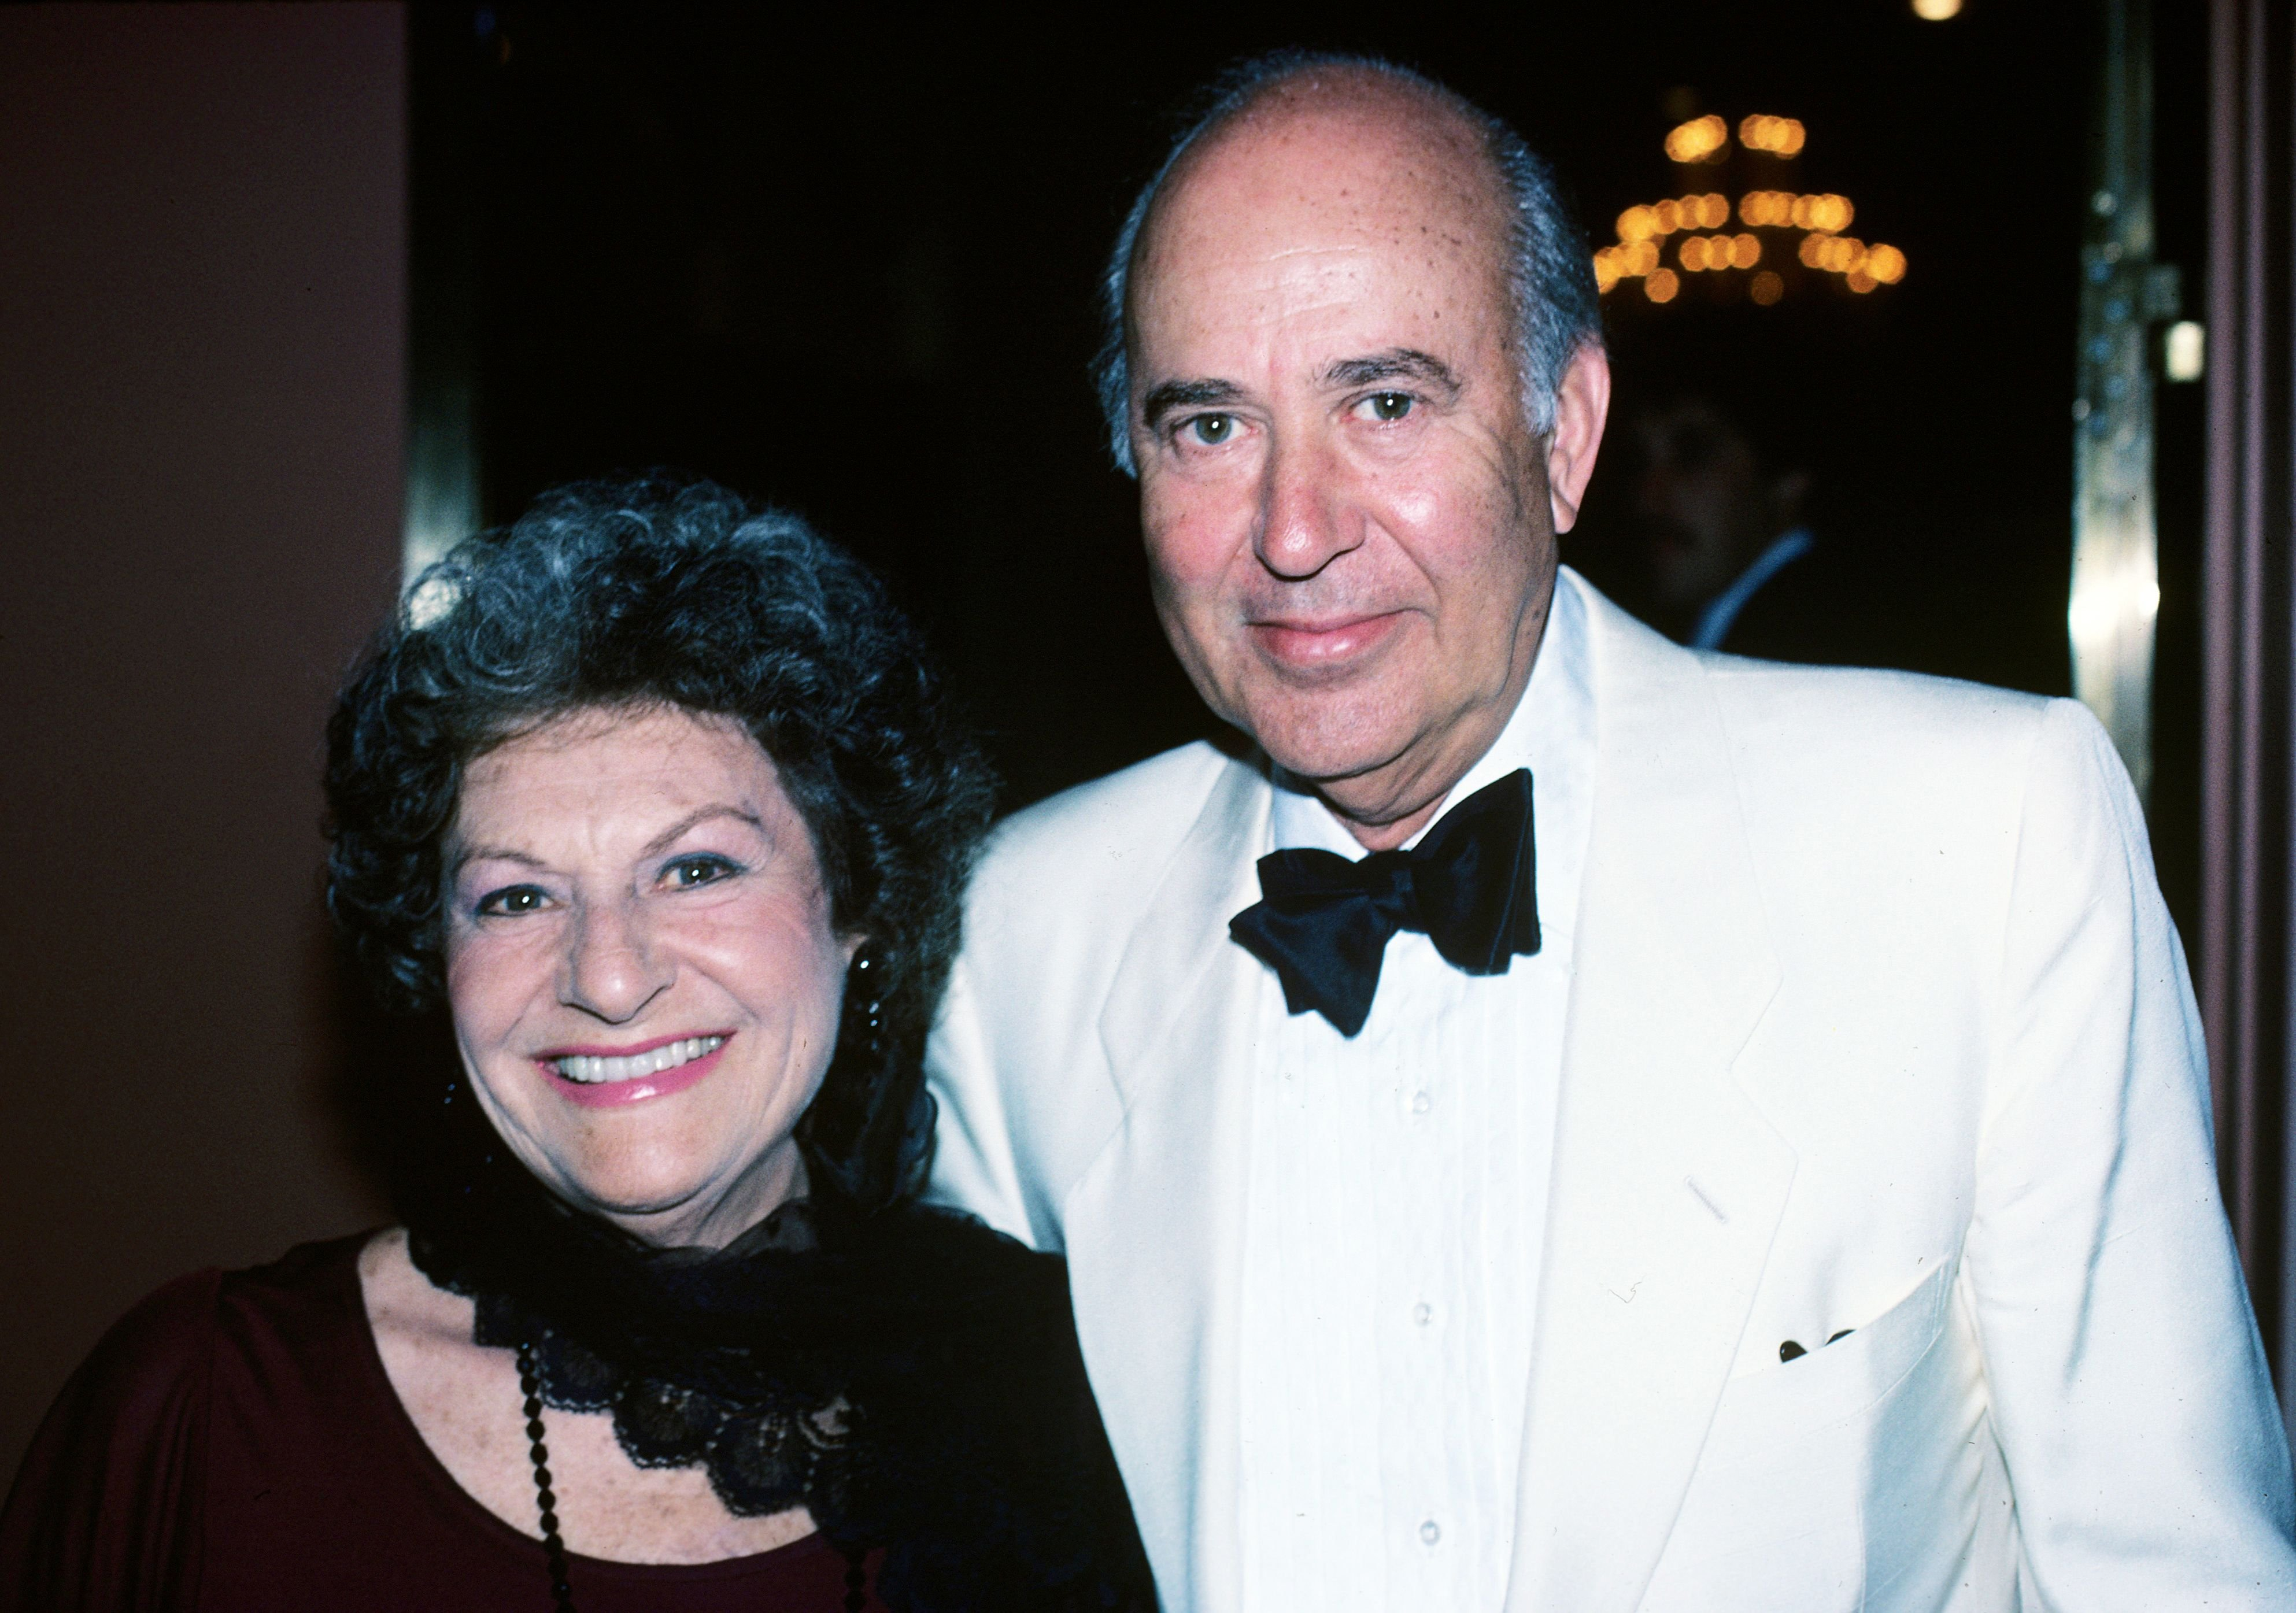 Late Carl Reiner & wife Estelle in 1984 in New York City on January 01, 1984 | Photo: Getty Images